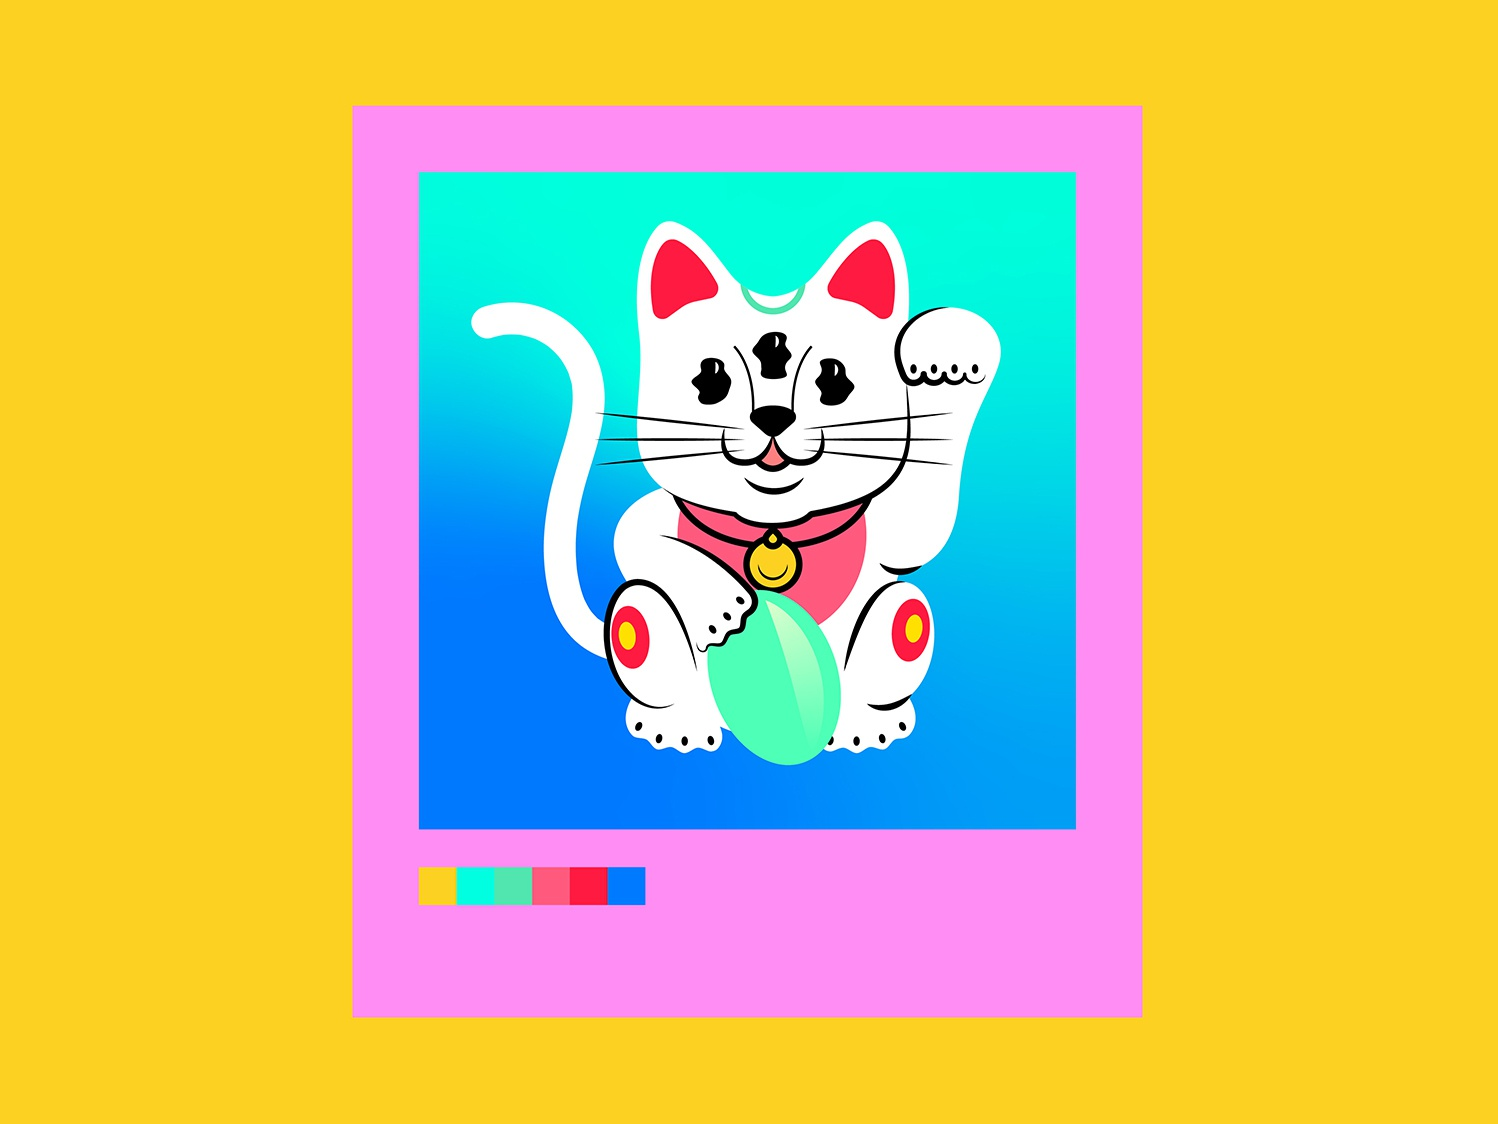 Chinese catto chinese cat cat color vector gradient dribbble illustration flat